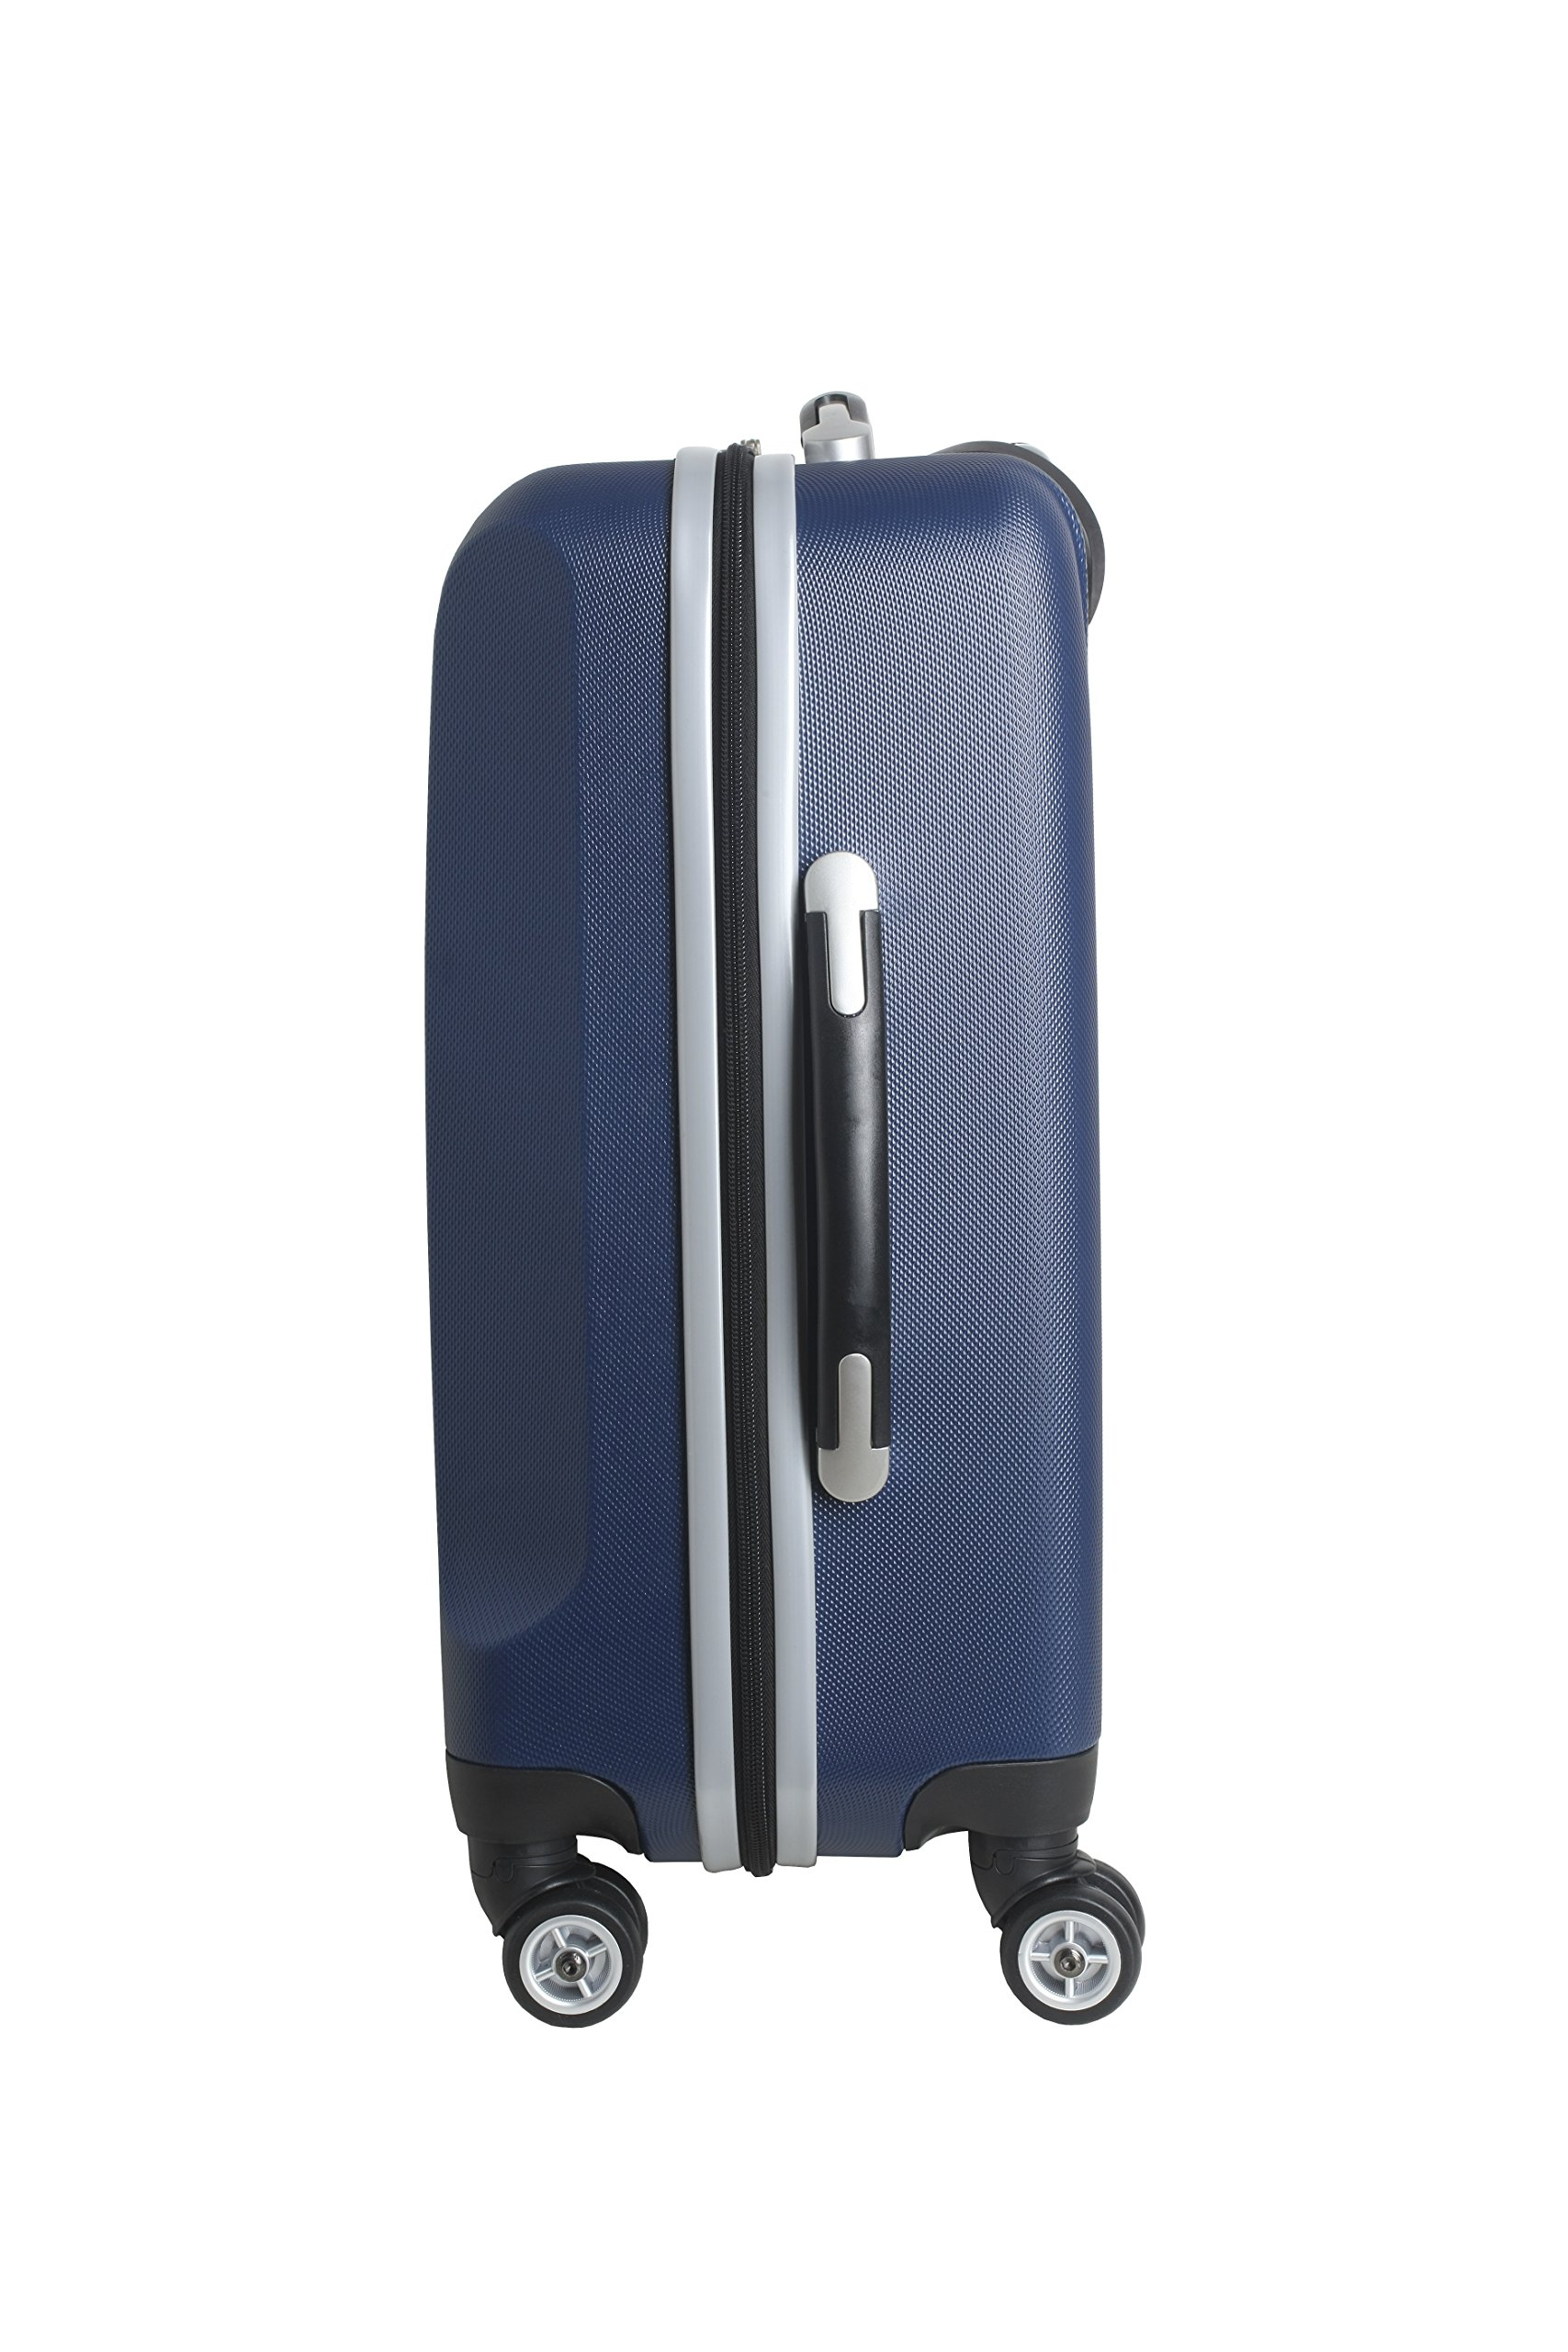 Denco NFL Miami Dolphins Carry-On Hardcase Luggage Spinner, Navy by Denco (Image #3)